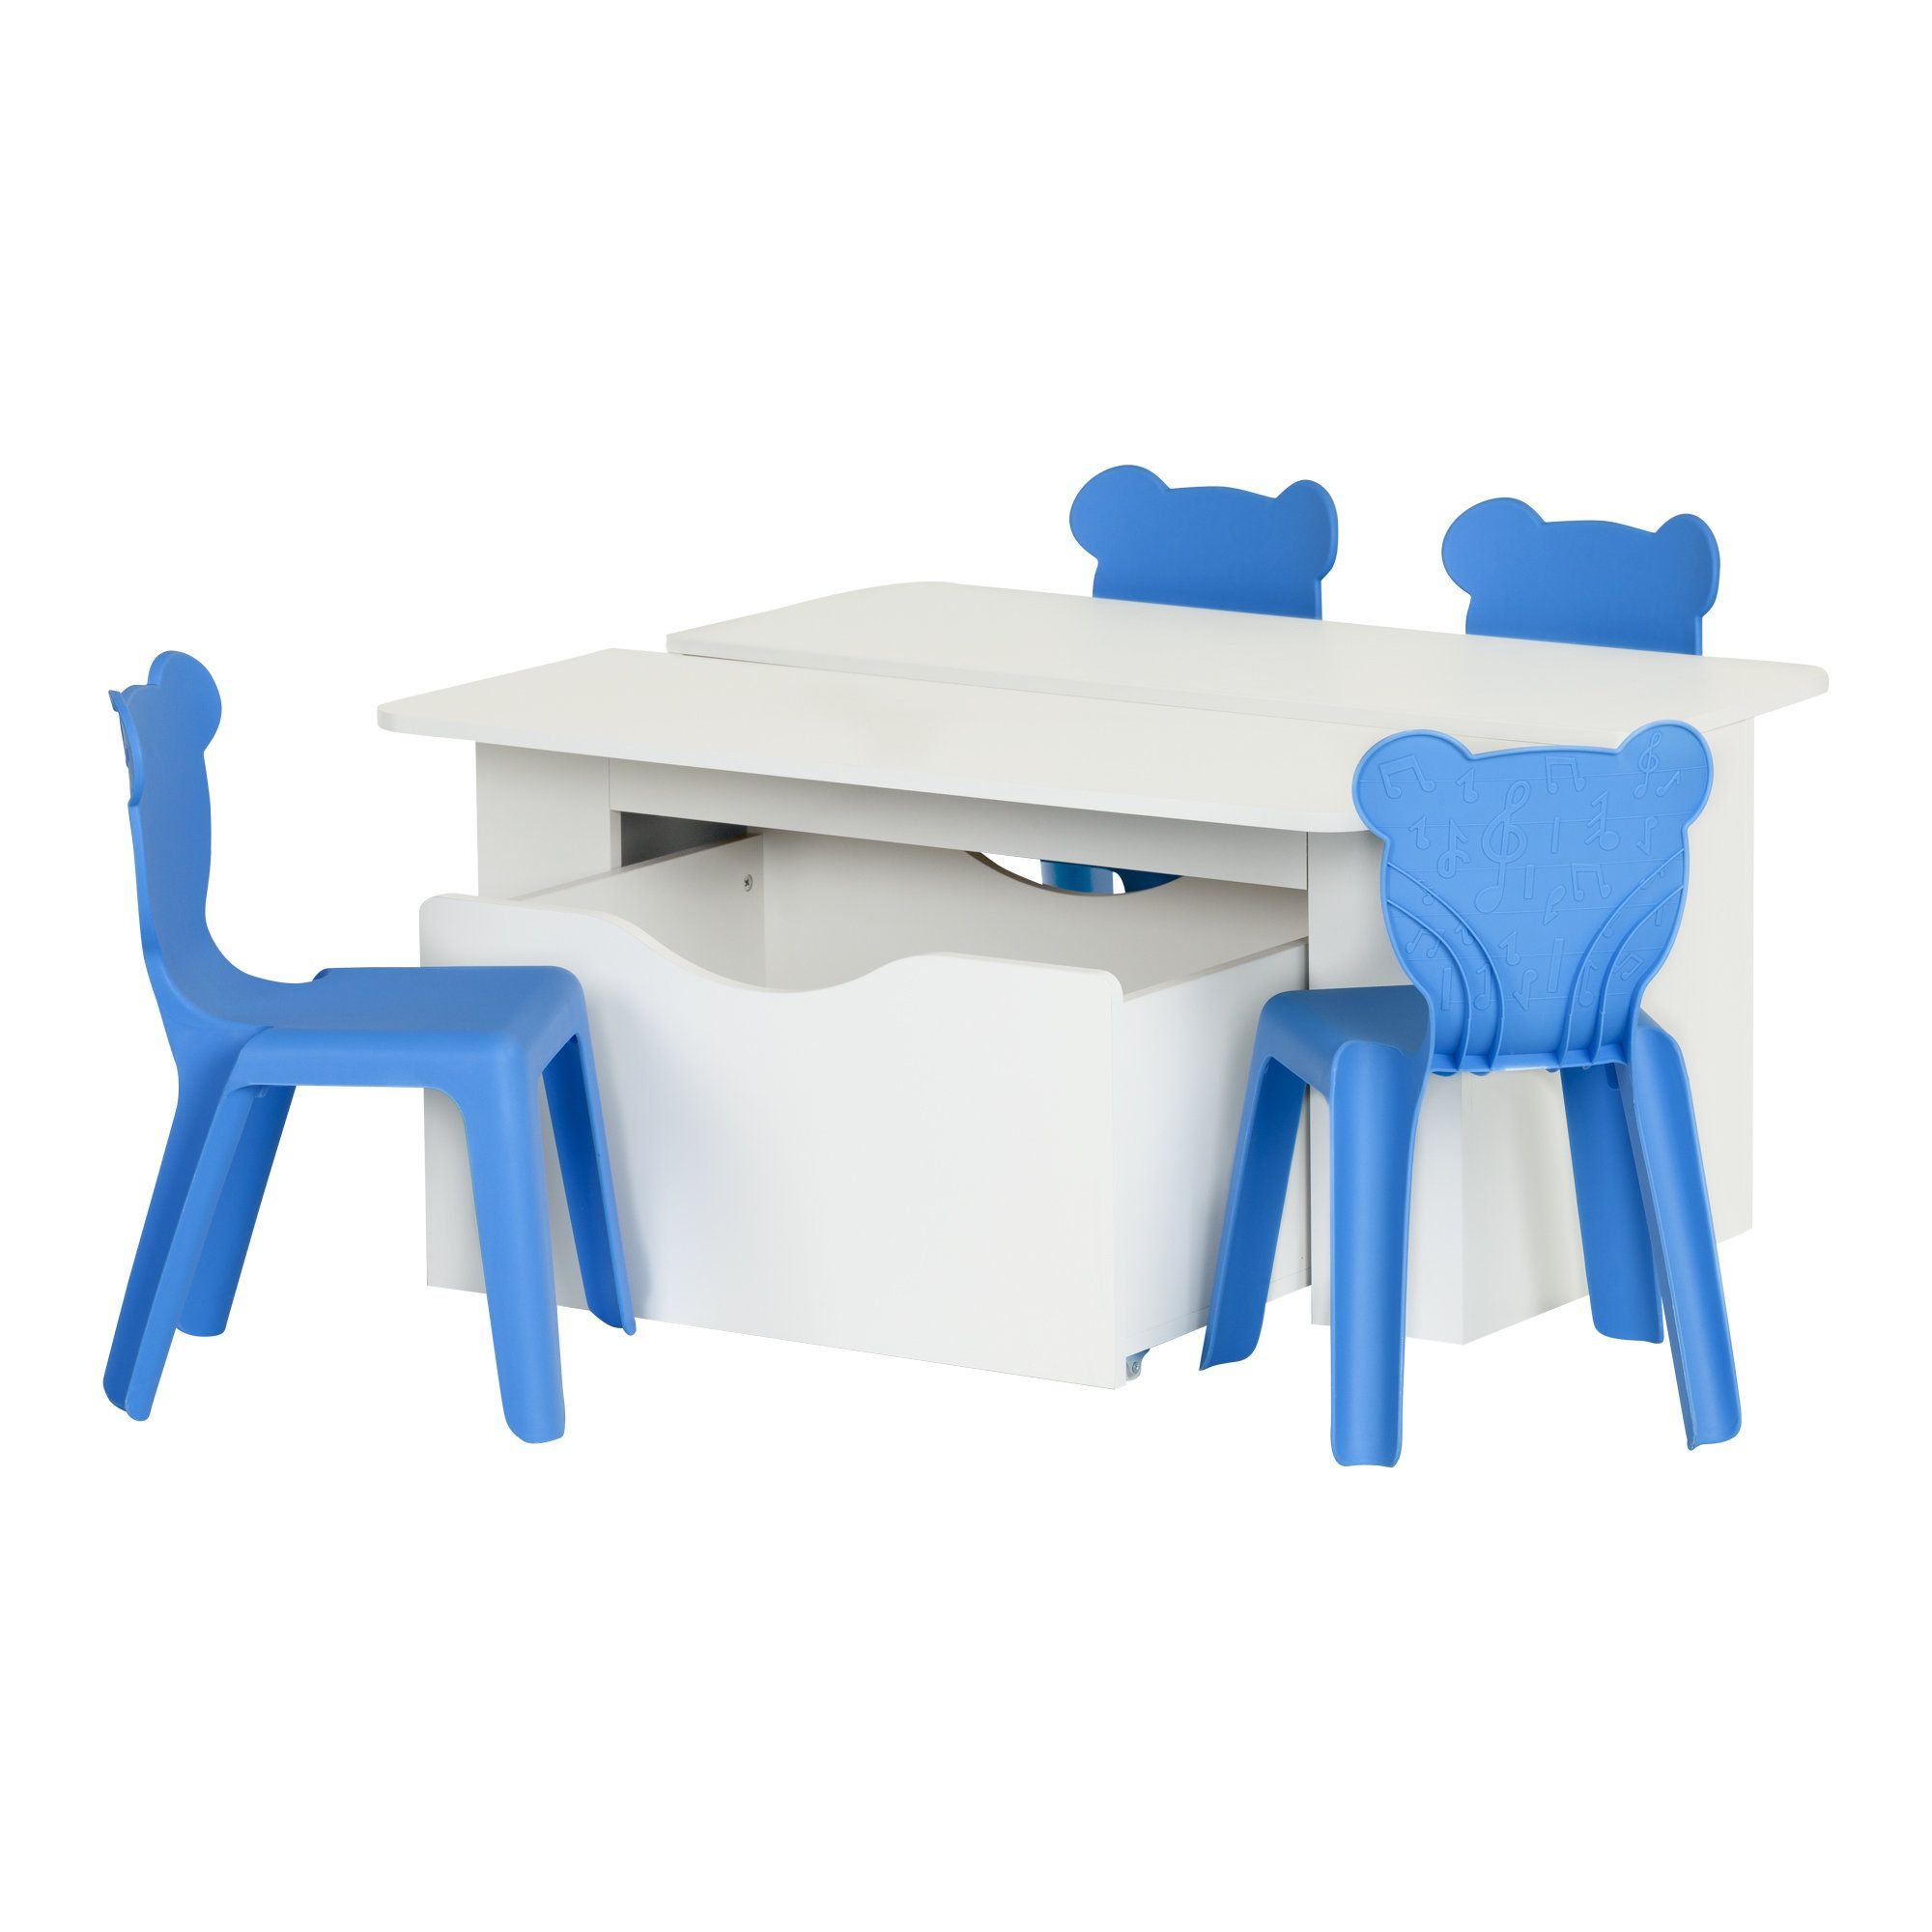 Plastic Kids Table And Chairs Cheap Chair Covers For Banquet Crea Activity 5 Piece Square Set